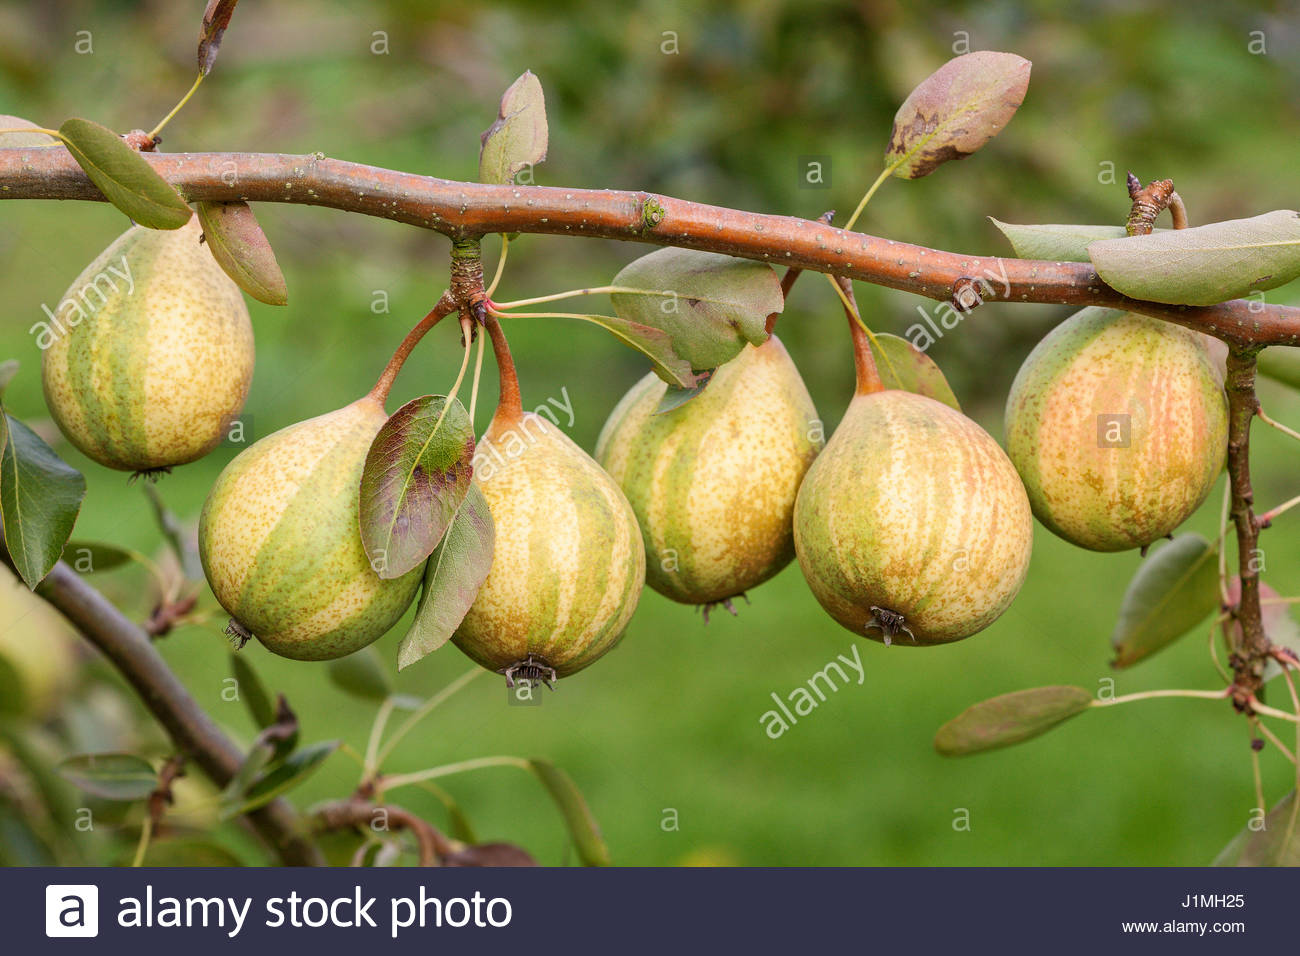 Shinko asian pear edible landscaping - Pyrus Pyrifolia Asian Pear Pysanka On Tree Stock Image